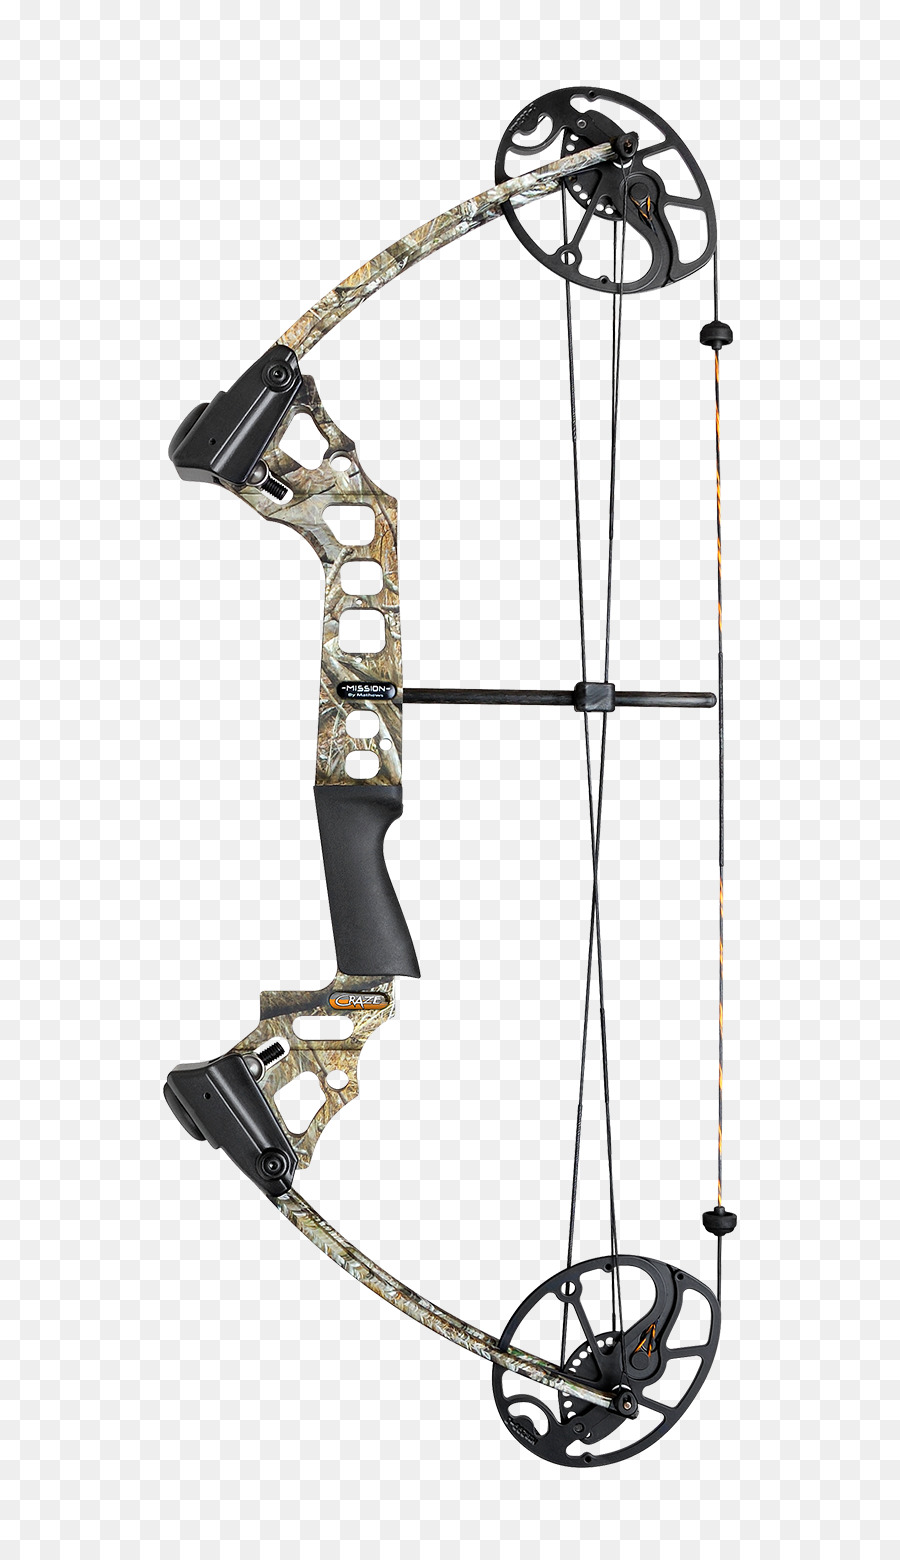 Archery Bowhunting Bow and arrow Compound Bows - archery - Compound Bow And Arrow PNG